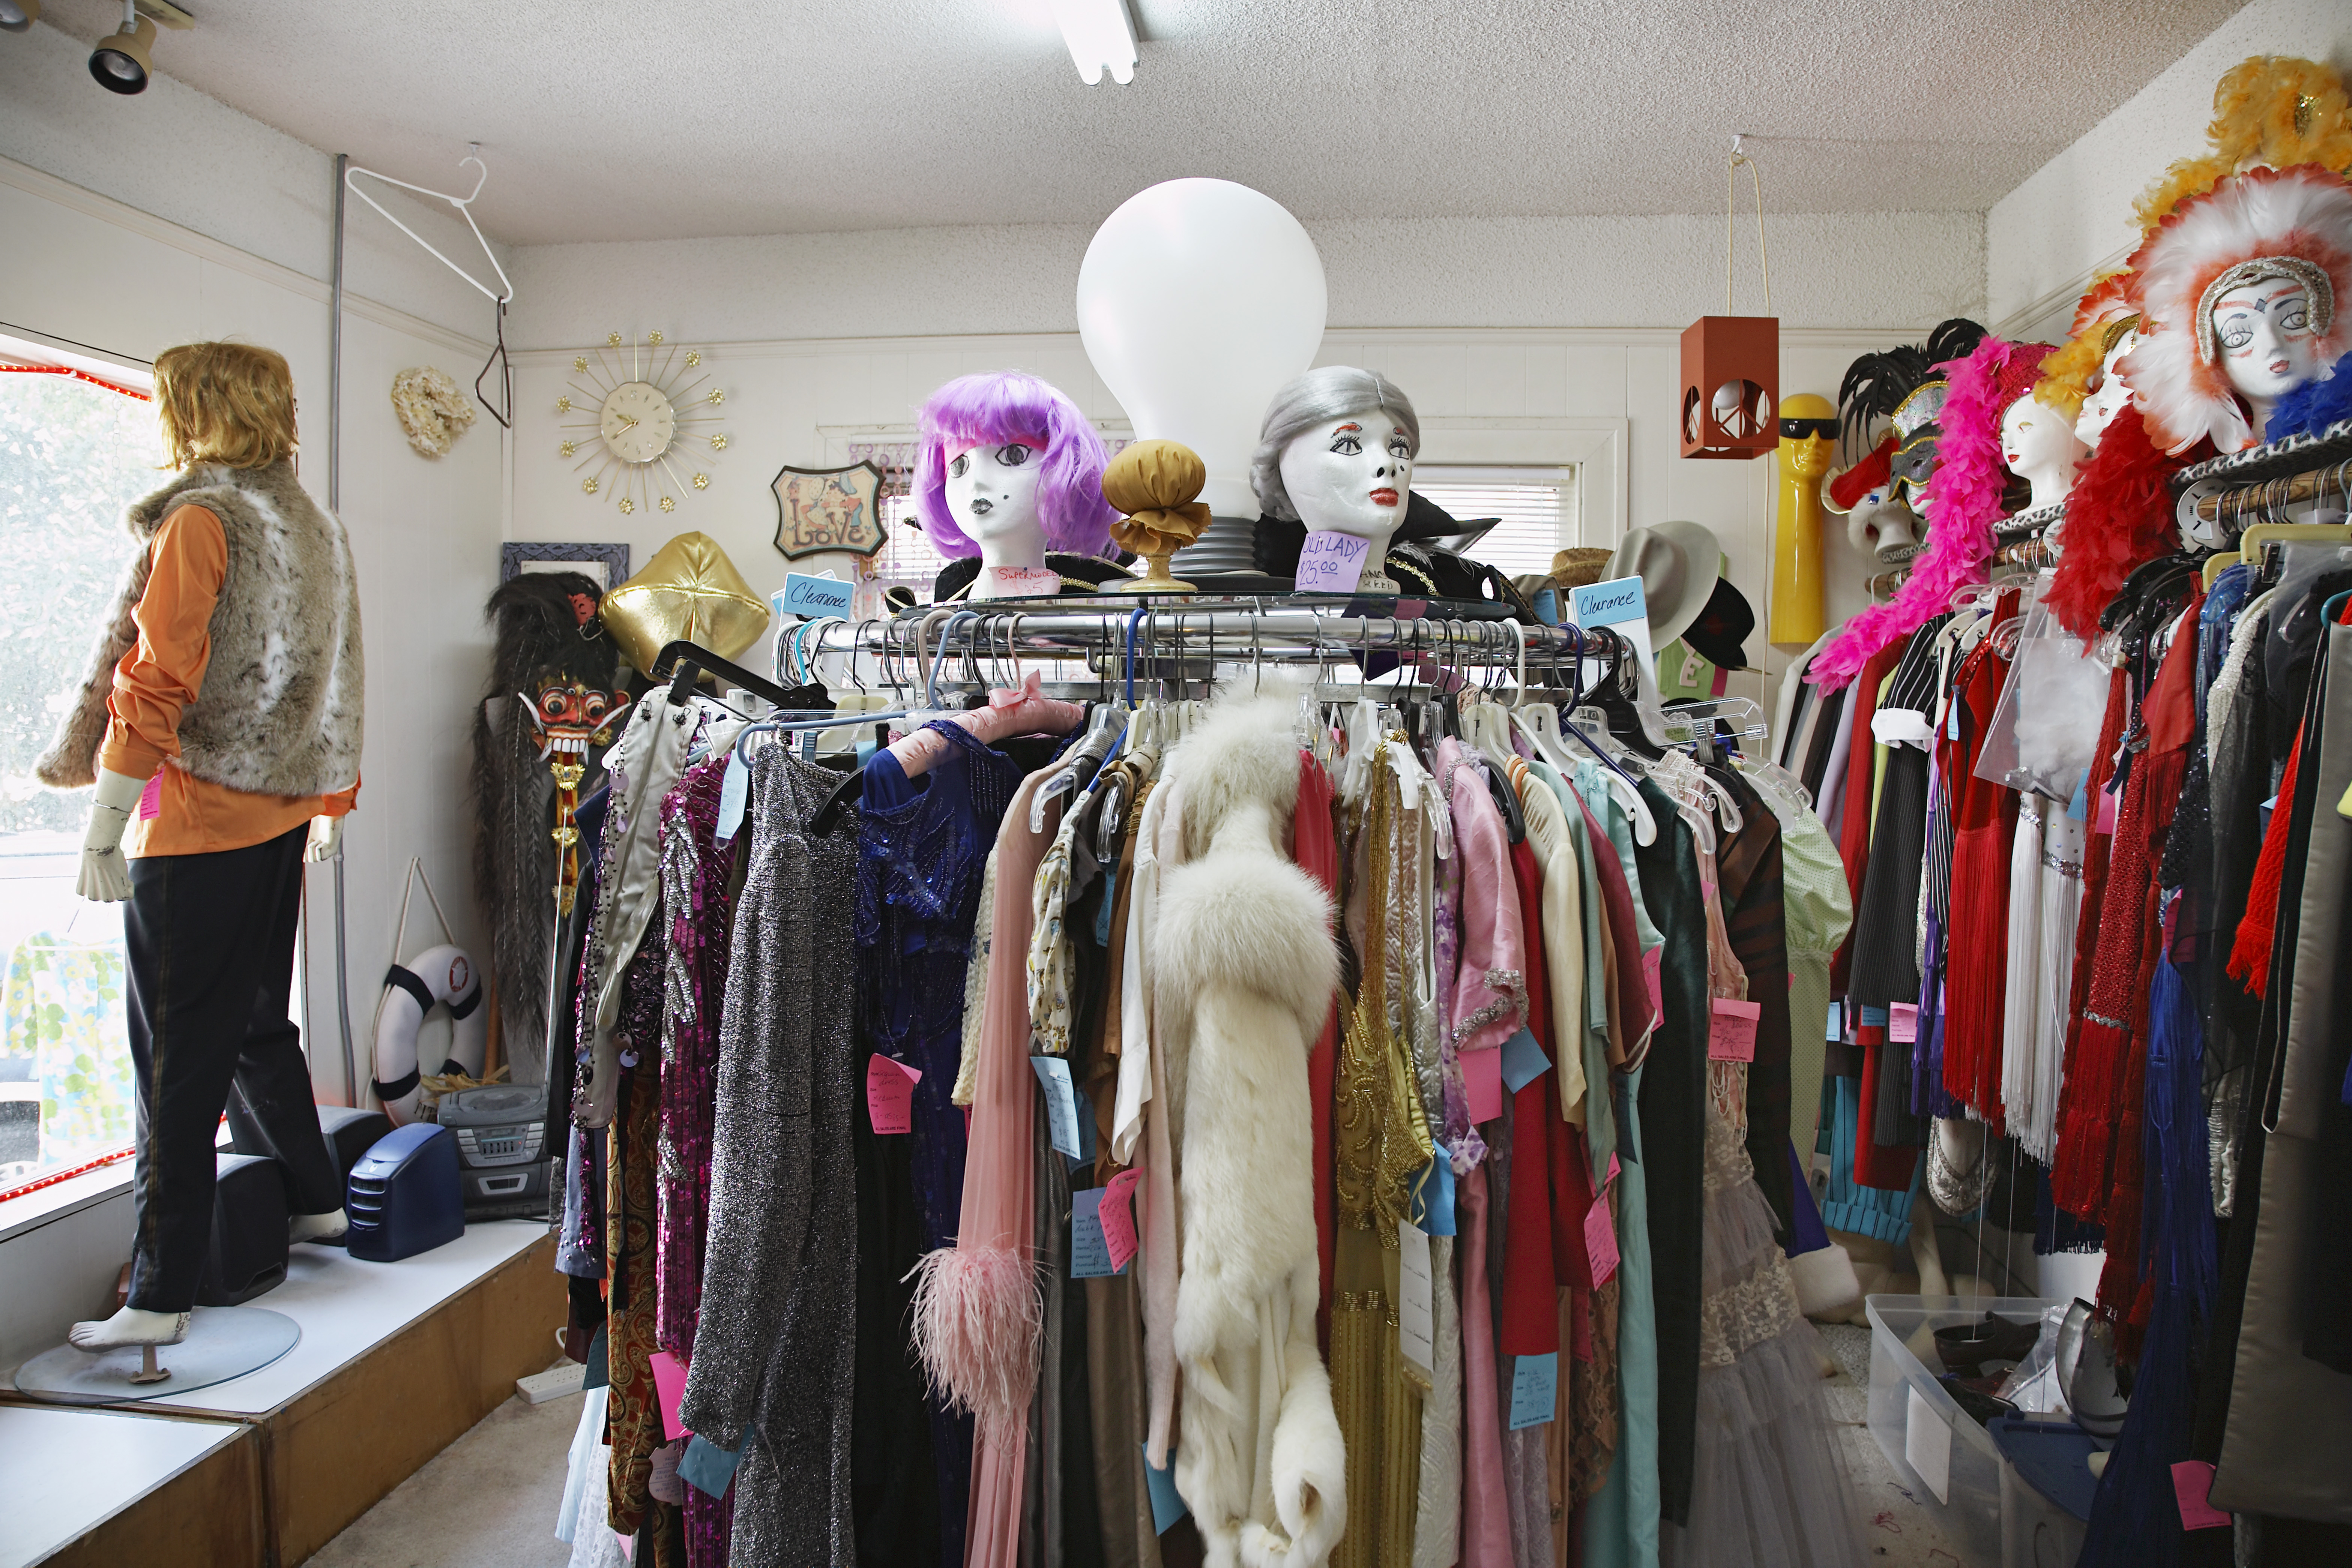 Clothing and wigs in crowded thrift store